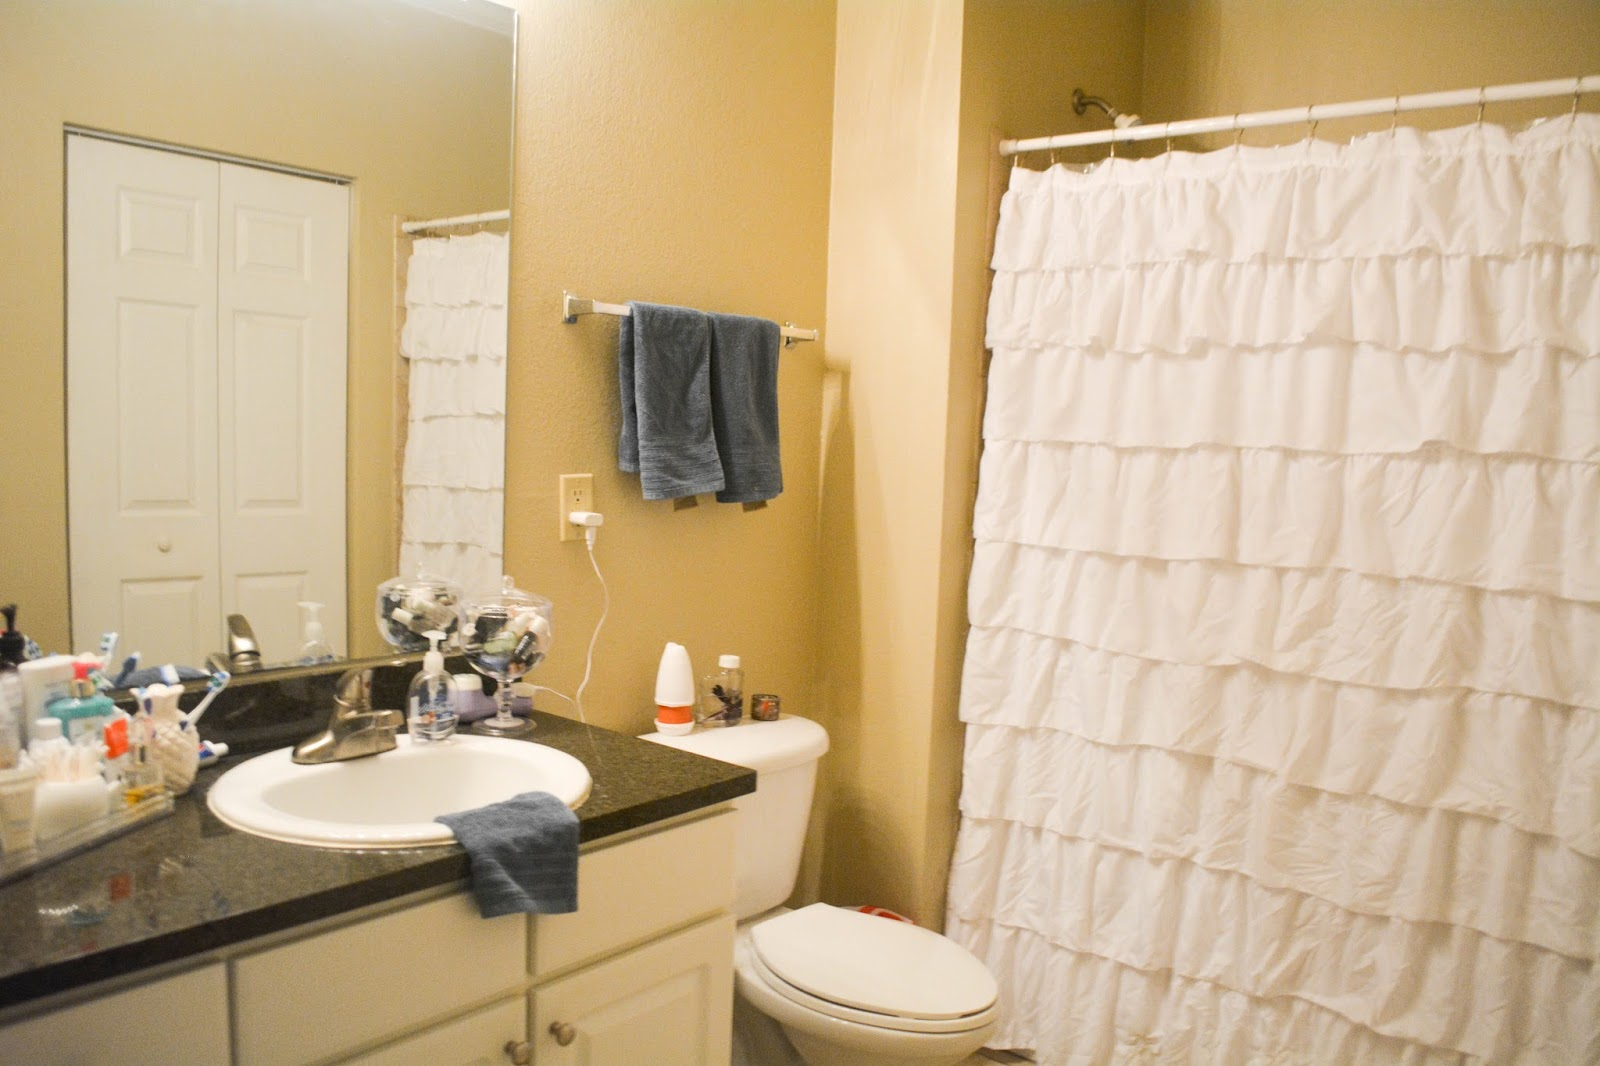 Apartment Tour: Bathroom